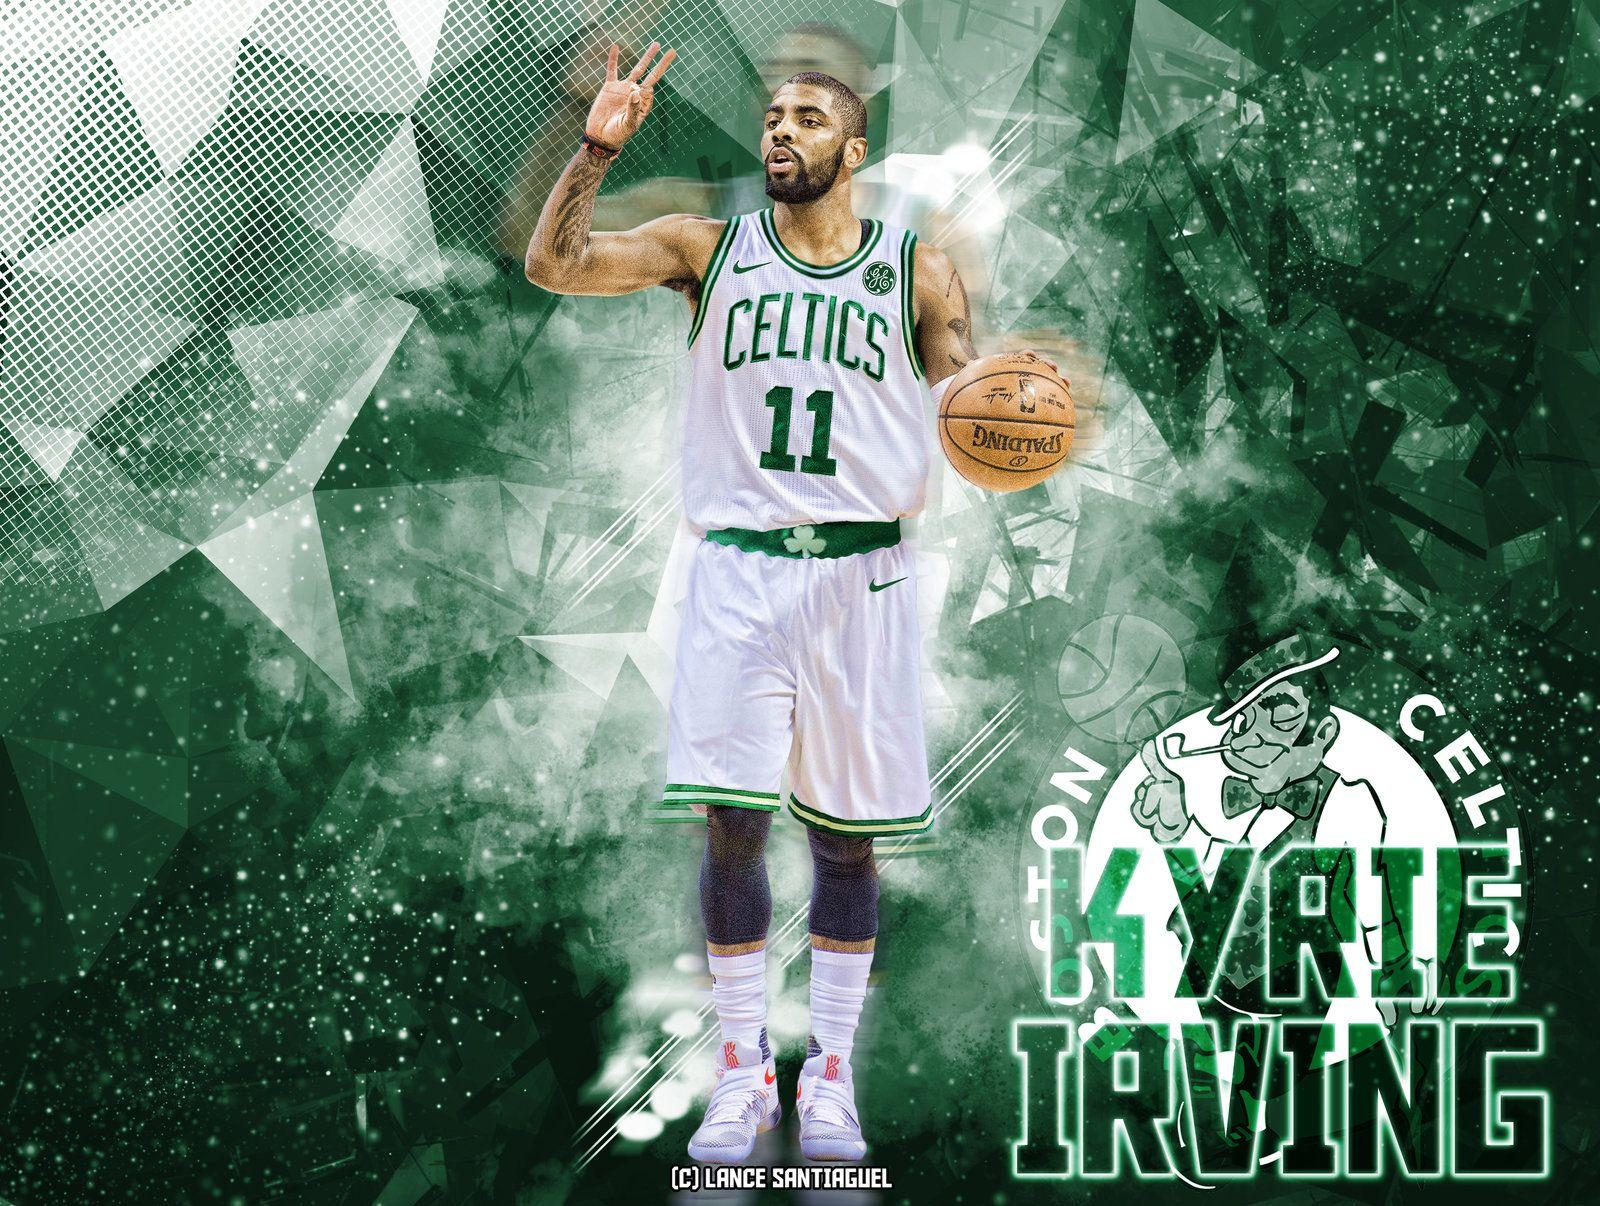 Kyrie Irving to Boston Celtics Fan Art by Lancetastic27 on DeviantArt. Download